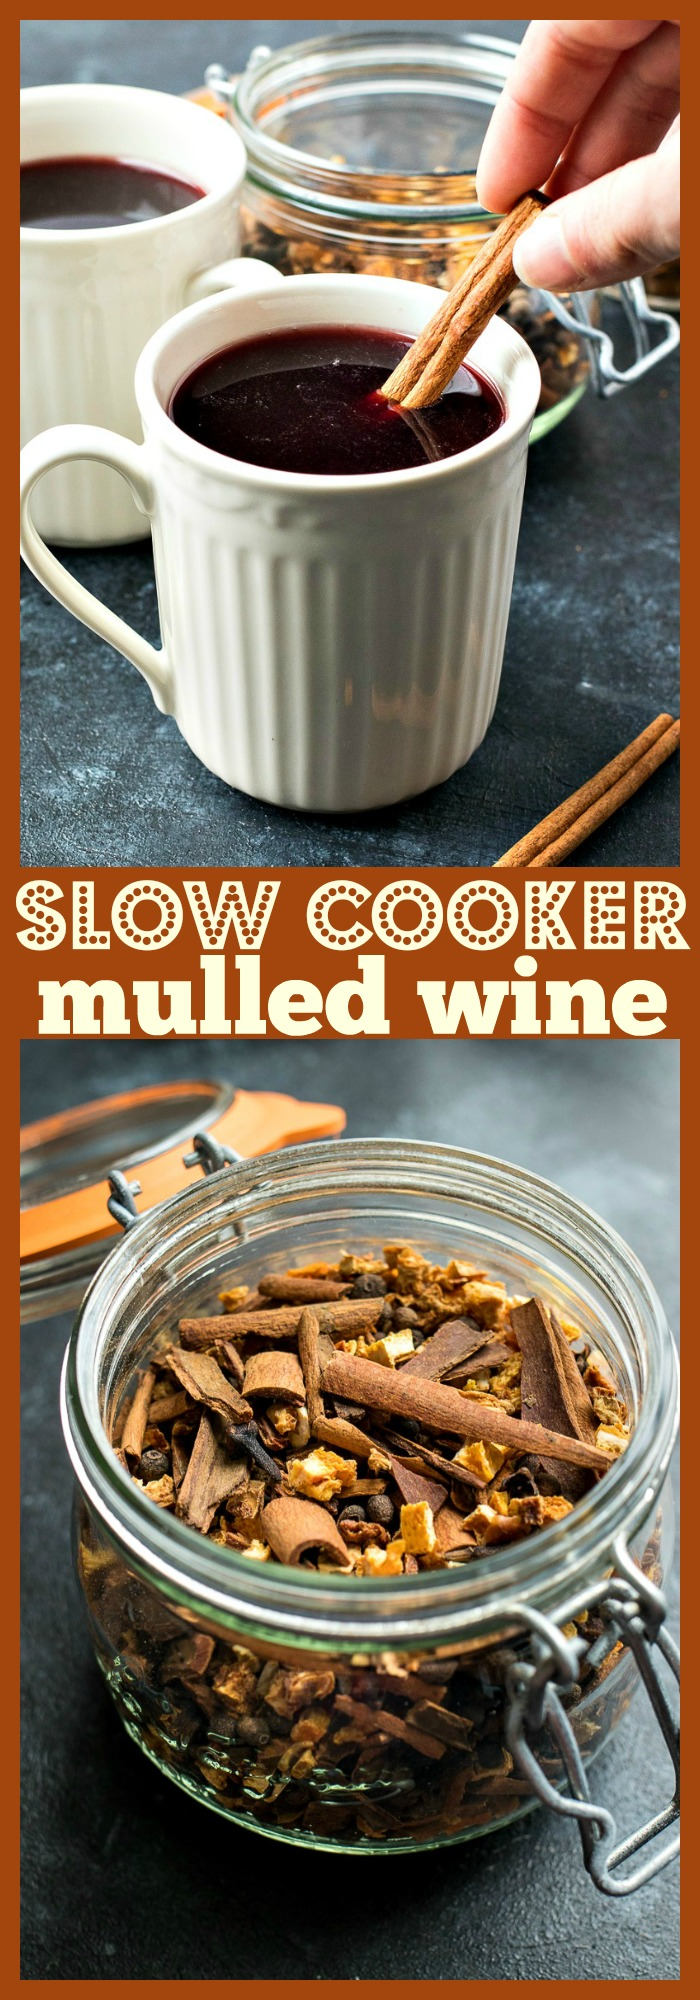 Slow Cooker Mulled Wine photo collage